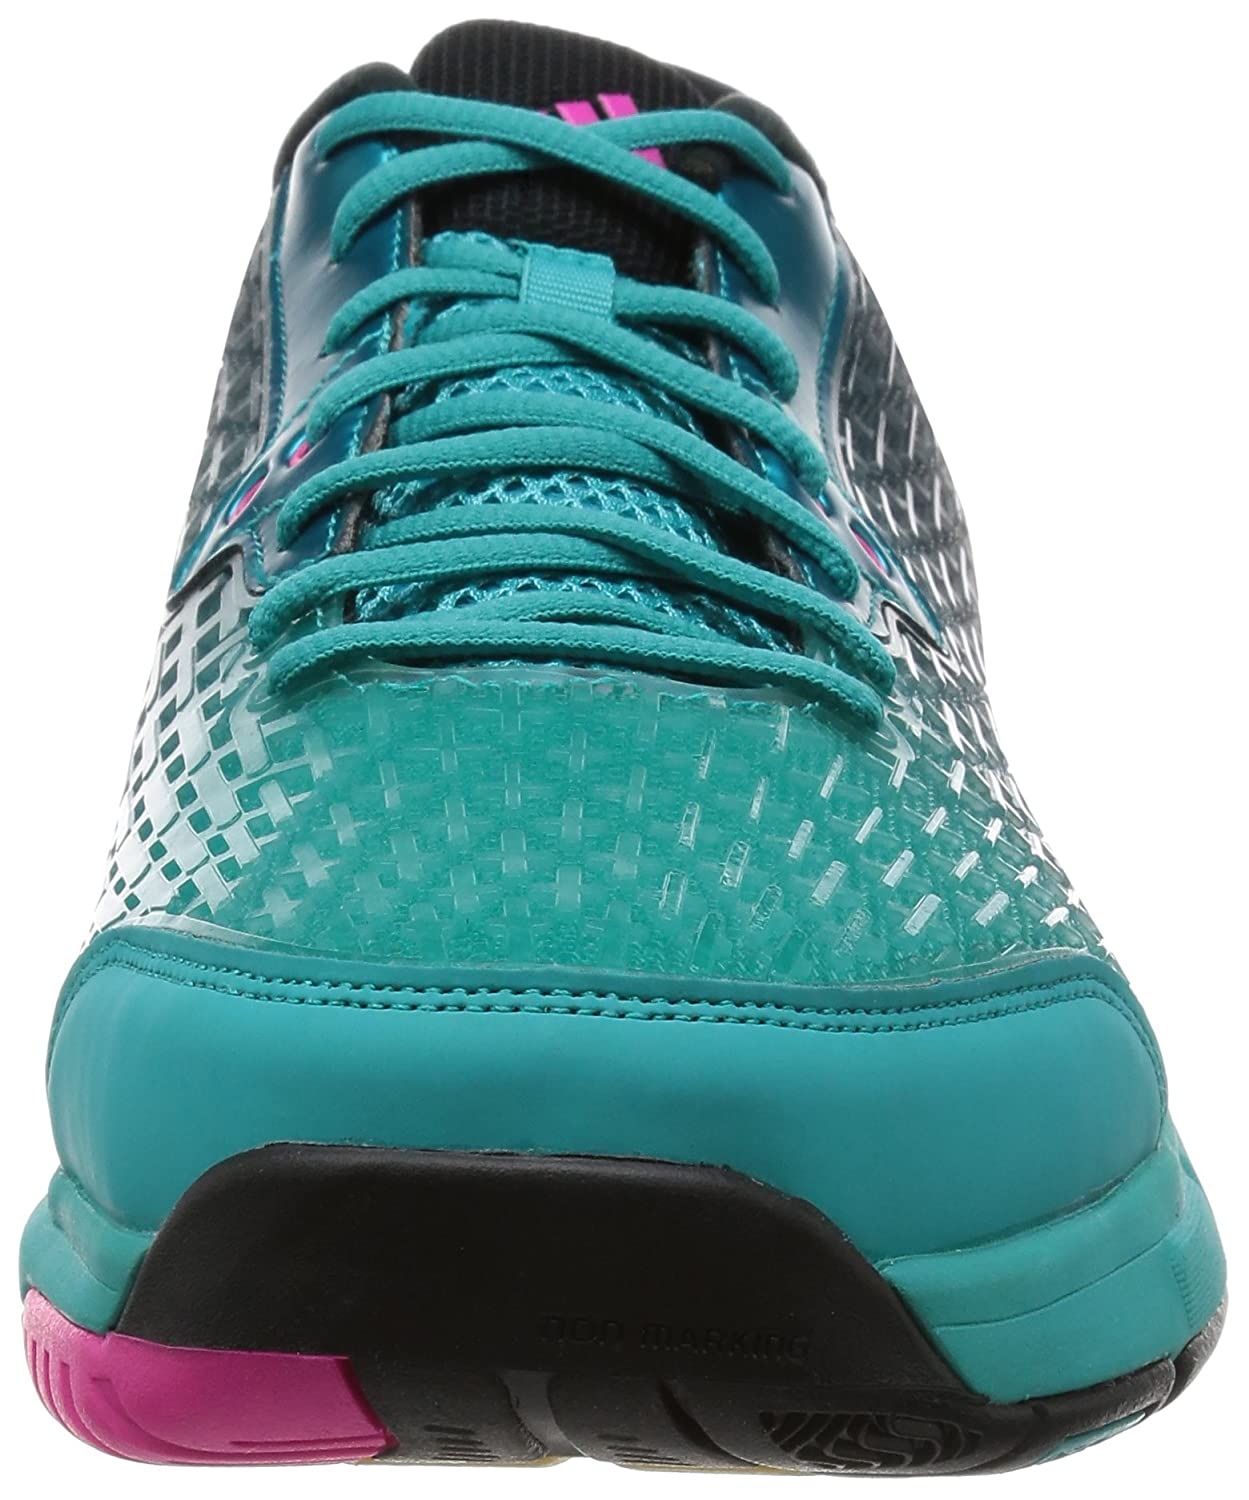 Adidas Vollyball Energy Volley Boost Femmes AQ5391 Taille 36 2/3 WXrTH